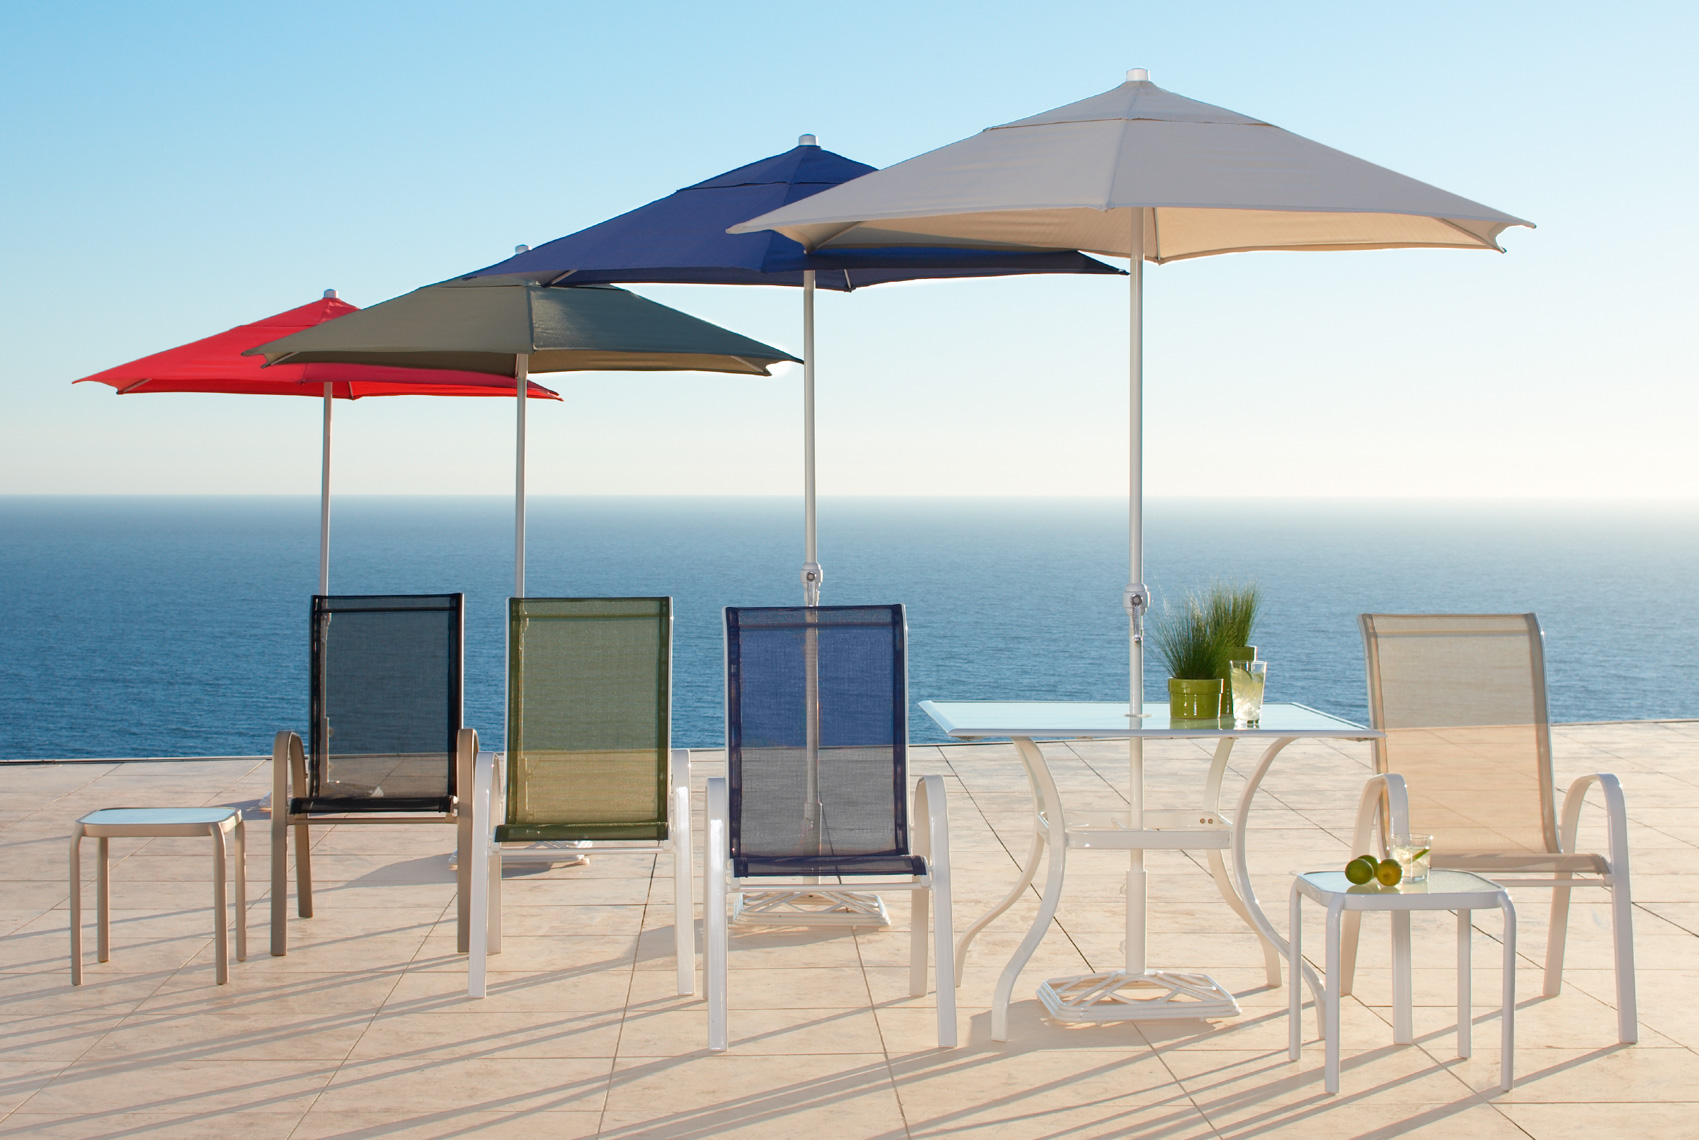 Modern chairs and umbrellas on outdoor patio near ocean San Francisco architectural photographer